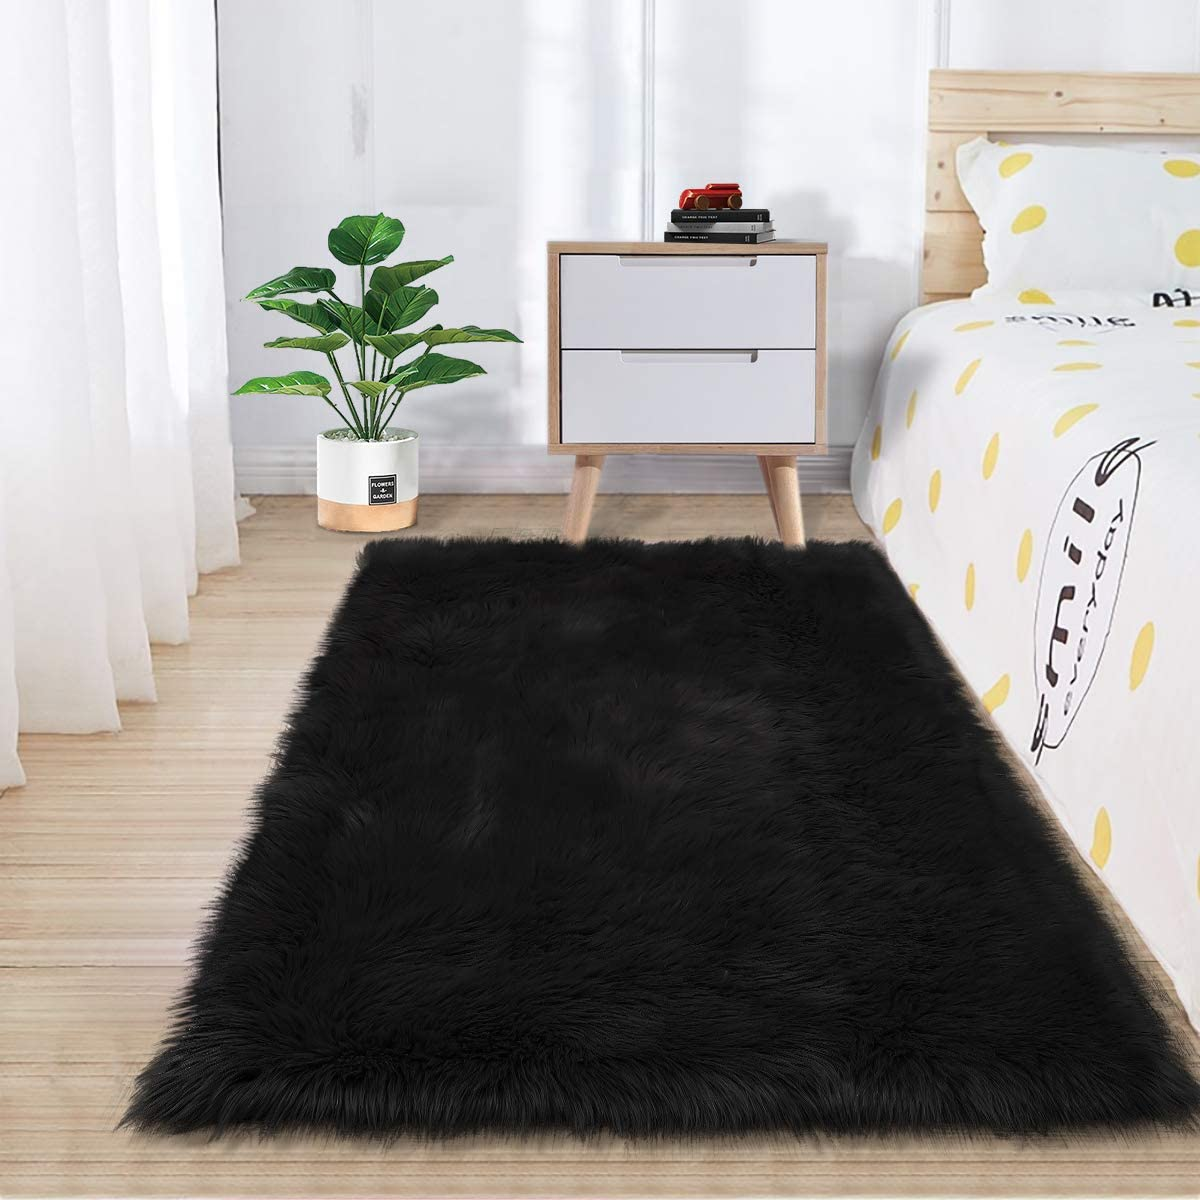 Zareas Super Soft Fluffy Bedroom Rugs, Luxurious Plush Faux Fur Sheepskin Area Rugs for Living Room Indoor Floor Couch Chair Vanity Home Decor Nursery Kids Girls Shaggy Carpet, Black (2 x 3 Feet)